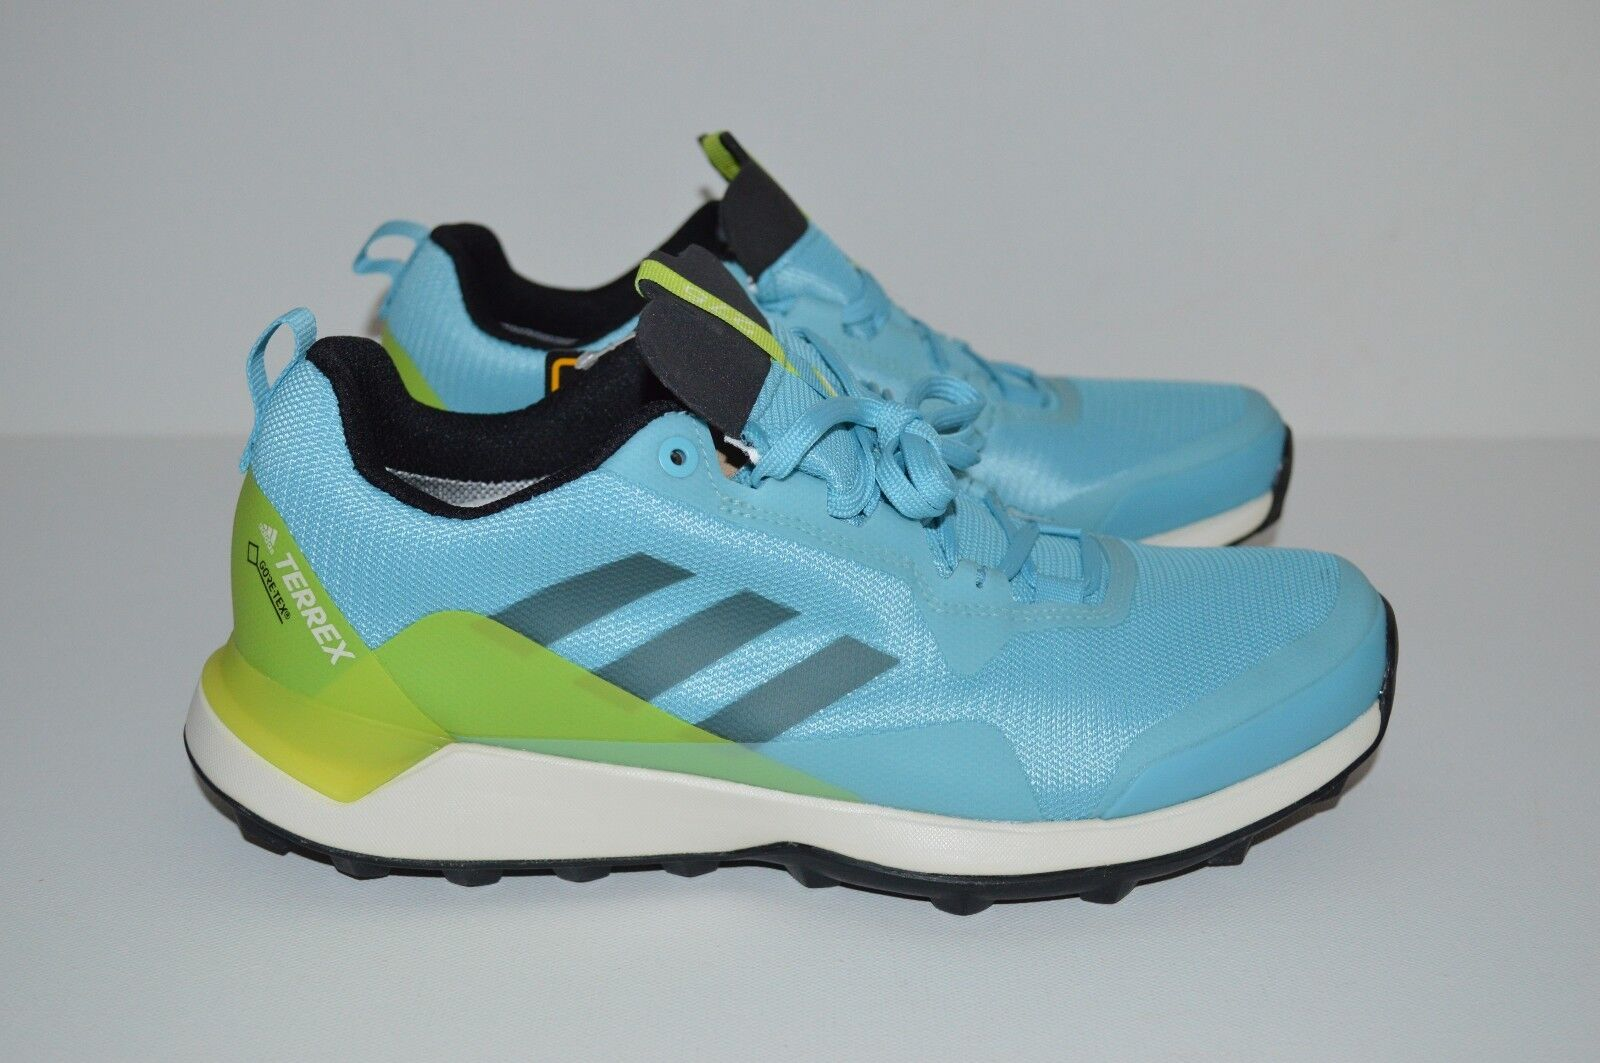 5bb26ddd0 ... ADIDAS TERREX CMTK GTX HIKING TRAIL SHOES WOMEN S SIZE US US US 8 BLUE  BY2773 6e3075 ...